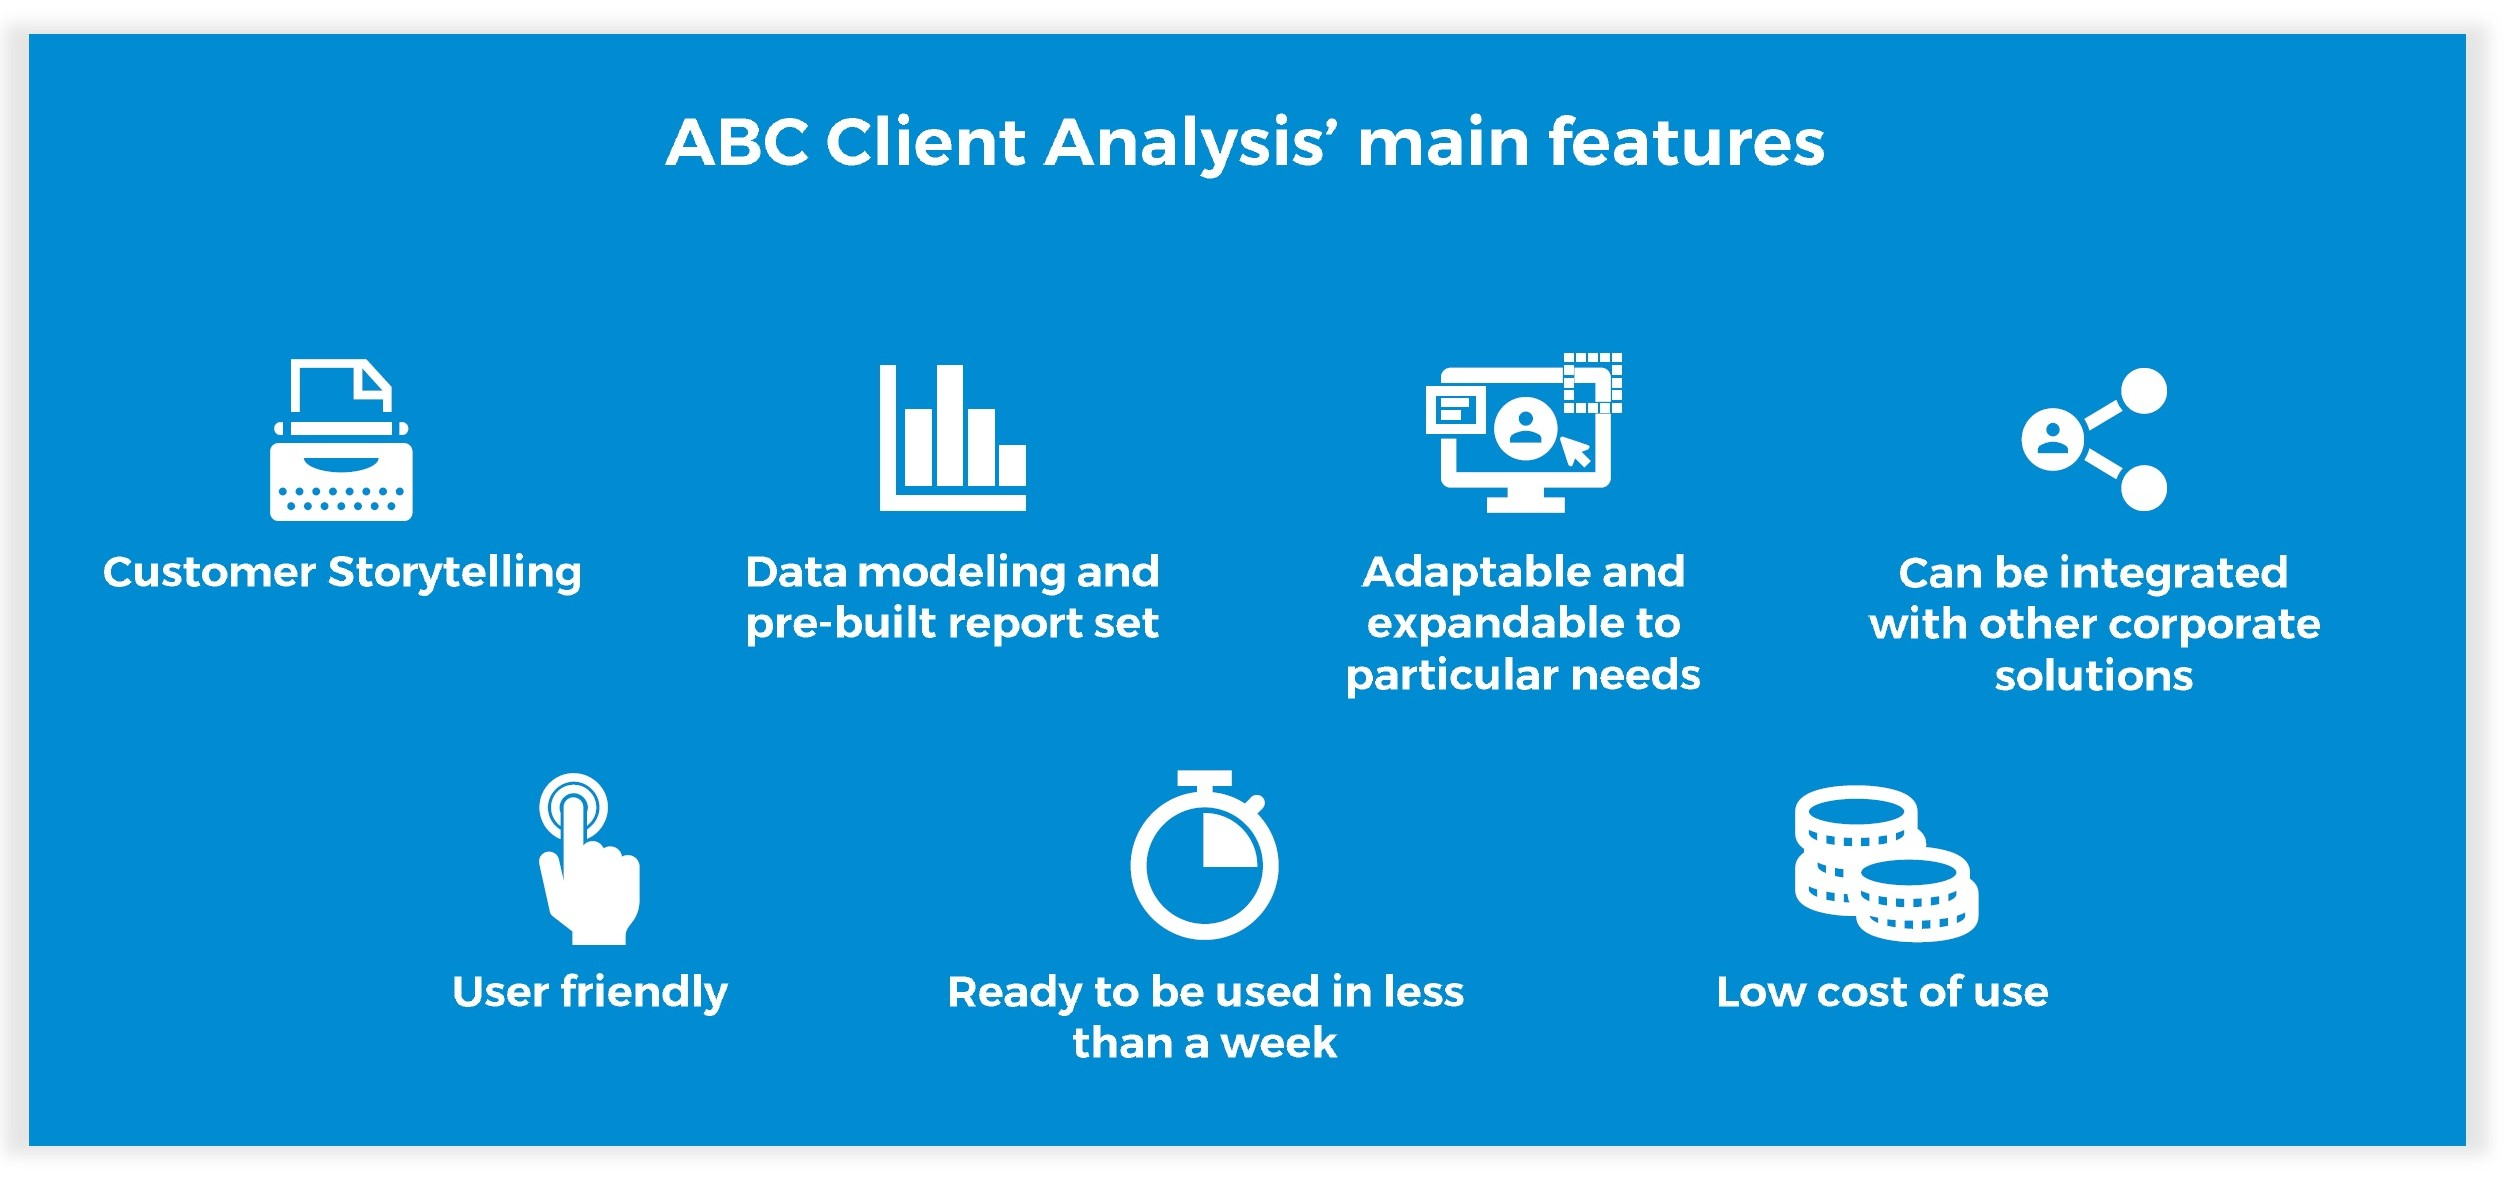 abc-client-analysis-main-features